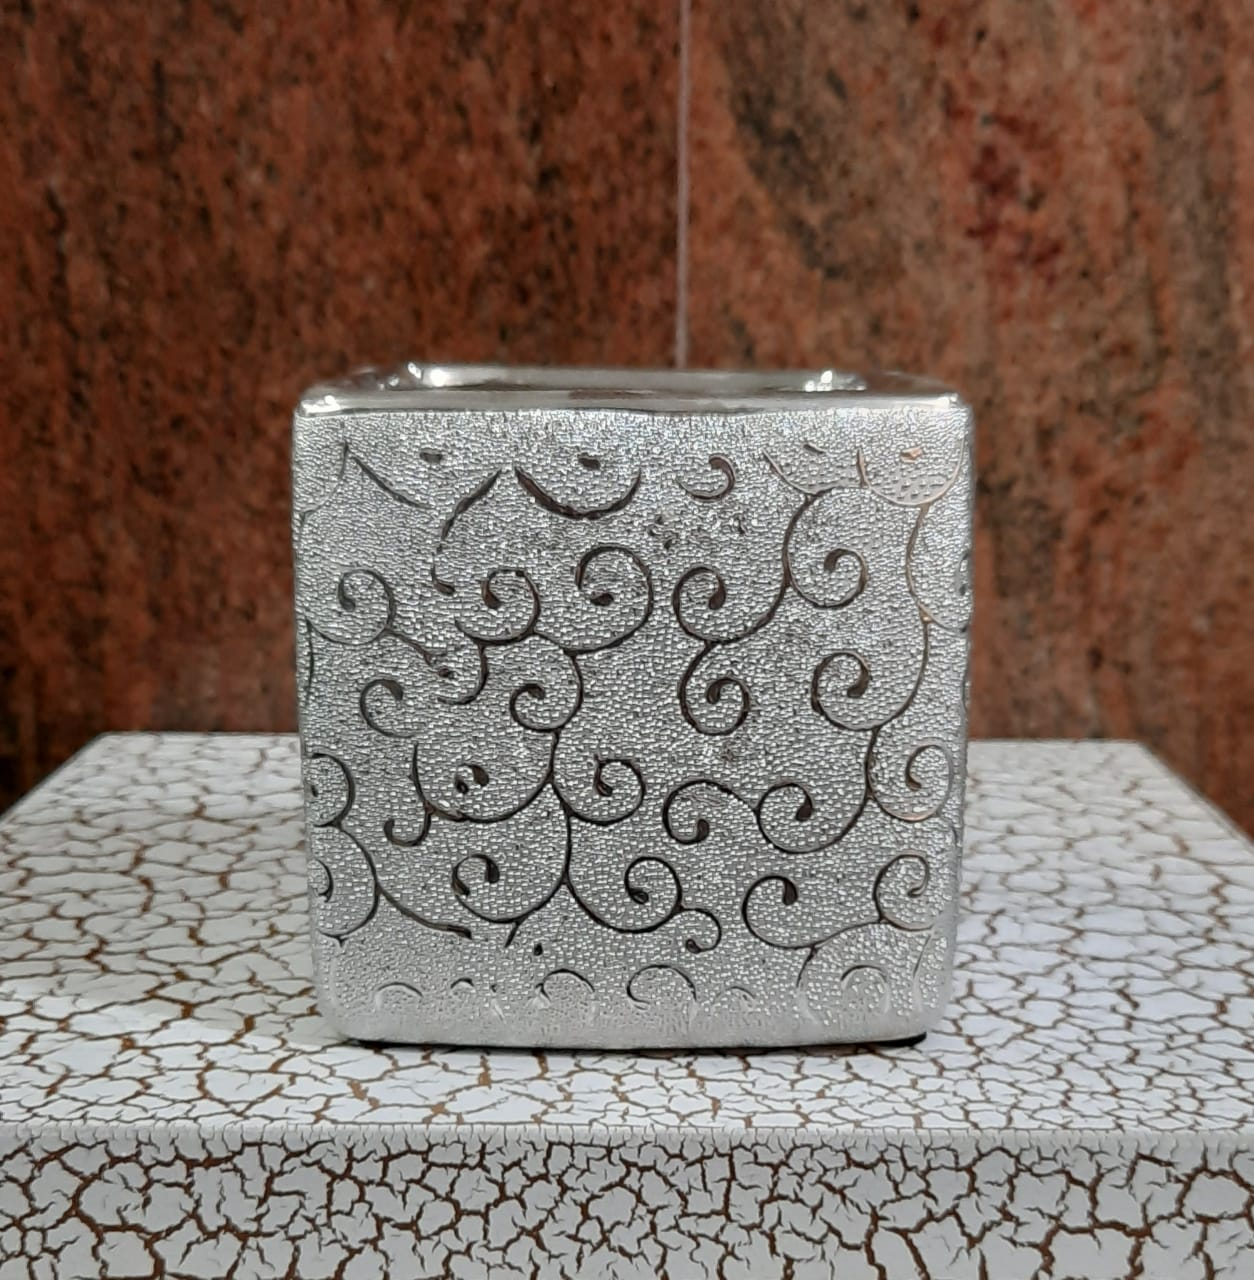 10cm Ceramic Square Base - Green Gardens Mihiliya (Pvt) Ltd